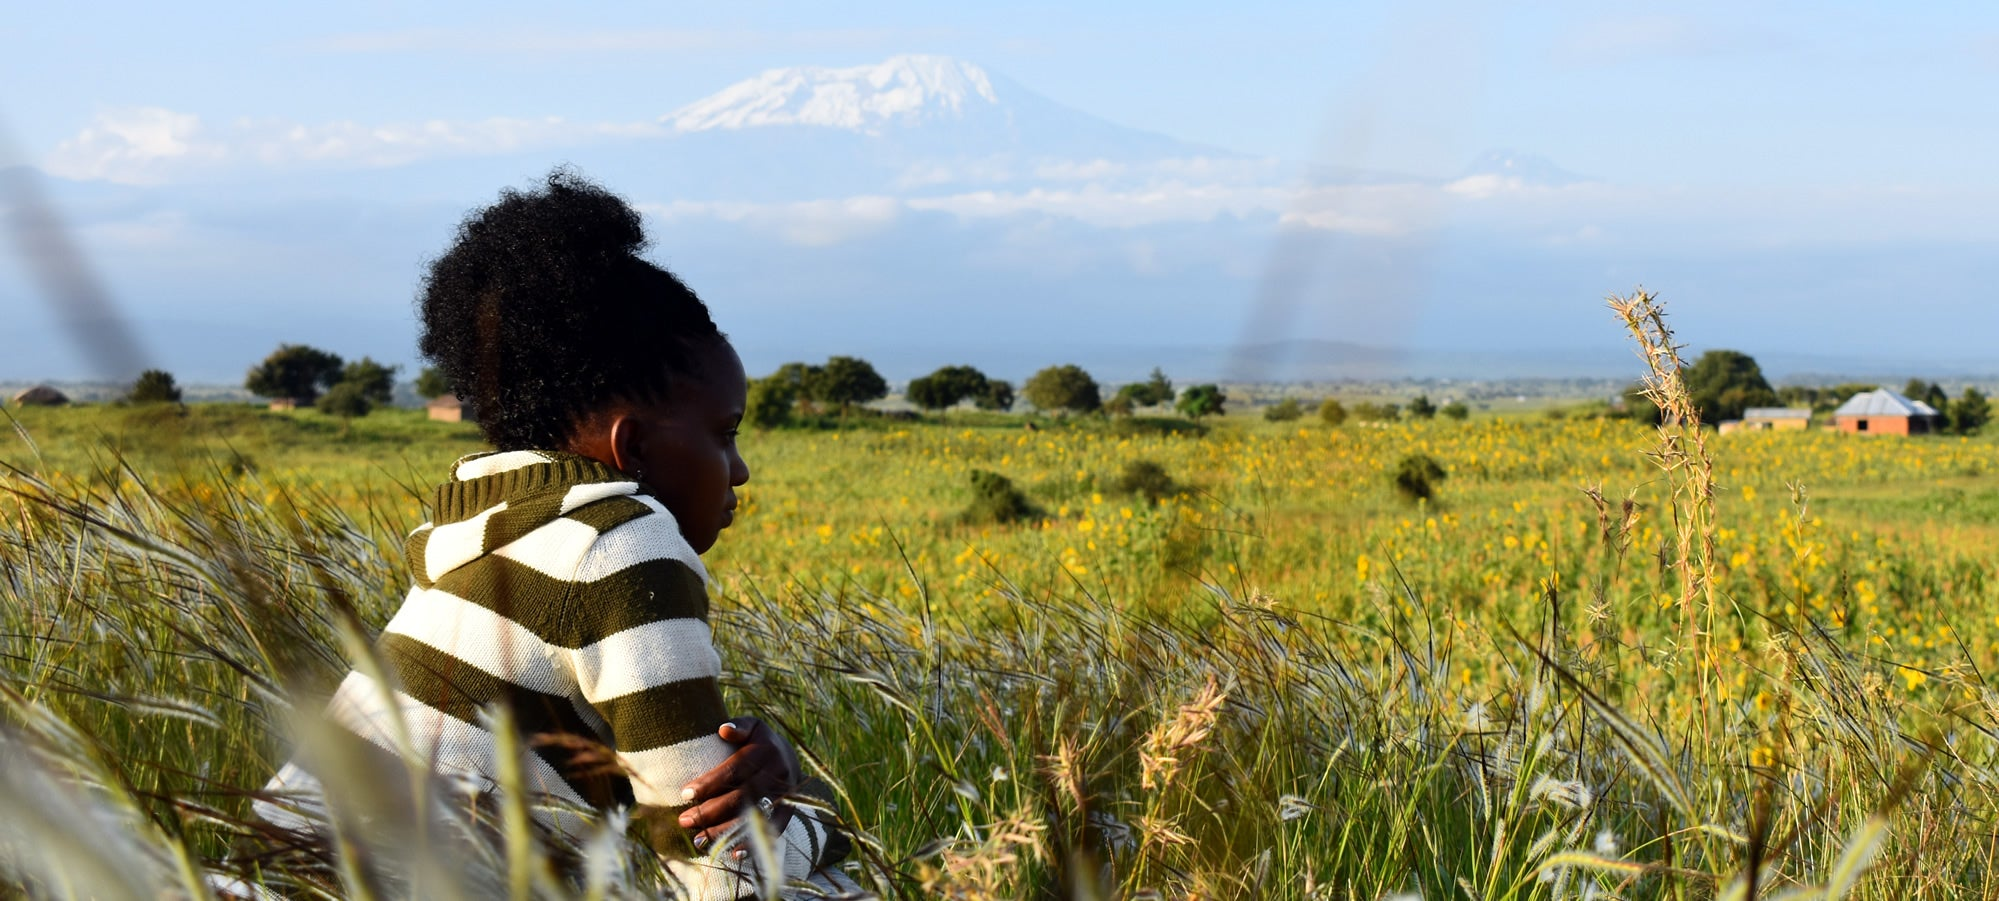 Image of Mollel taken in 2018, showing the close proximity of her village to Mount Kilimanjaro.